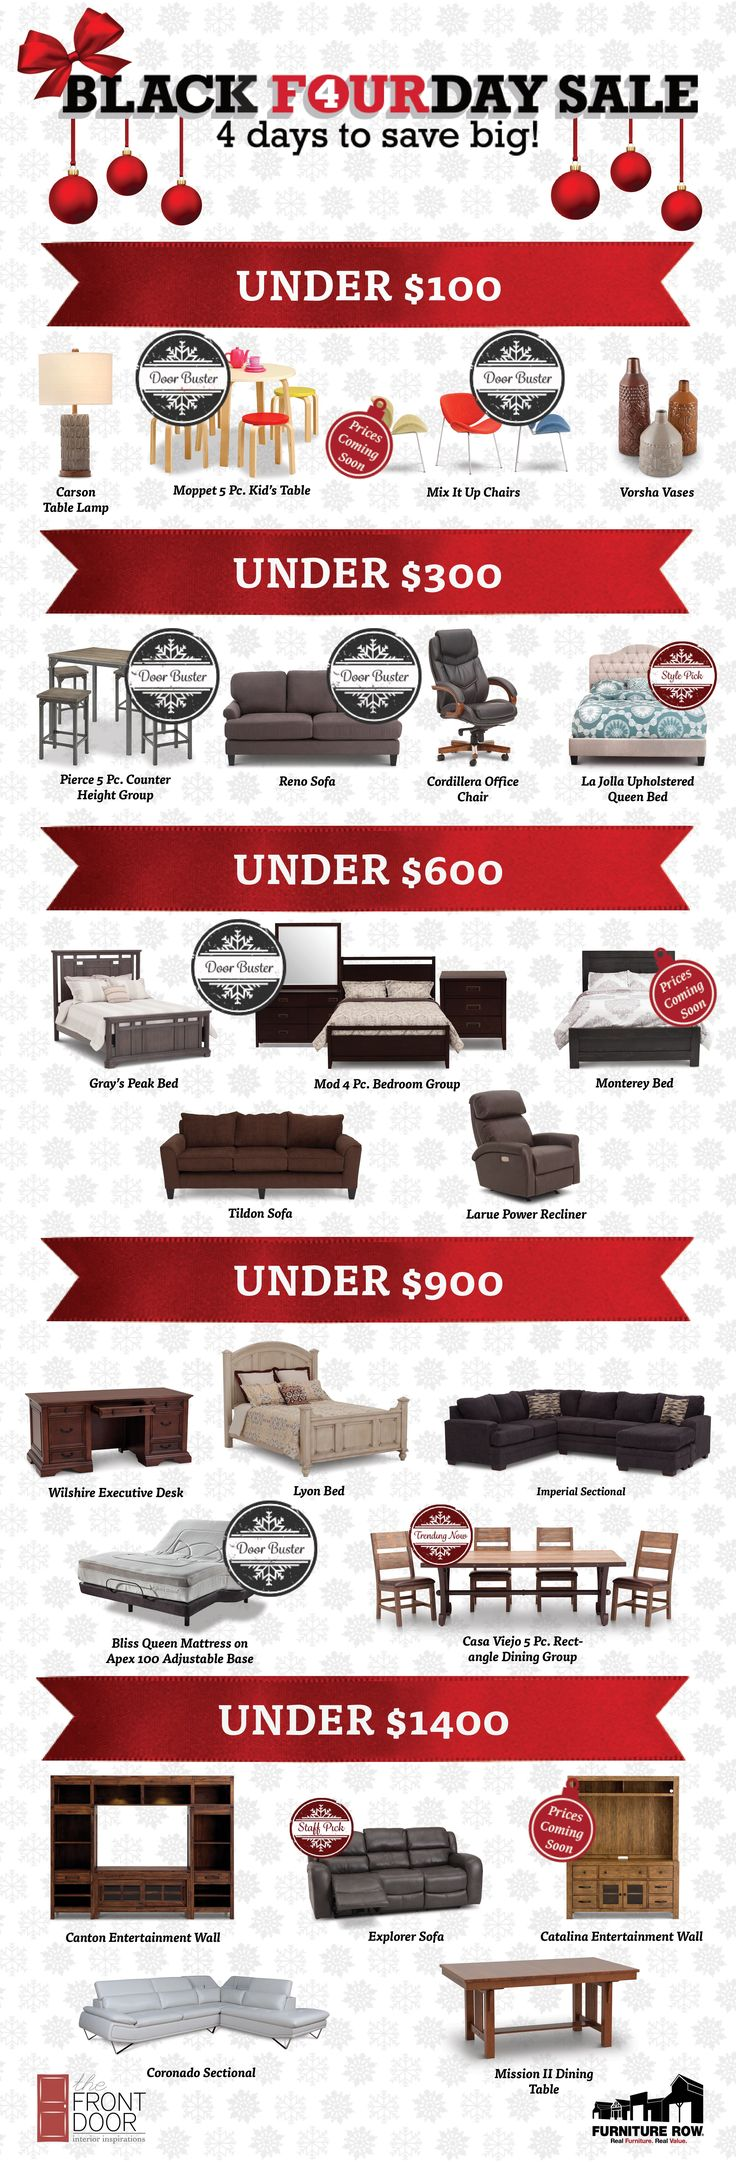 414 Best The Front Door Blog Images On Pinterest Bedroom Ideas Living Room Ideas And Ad Home